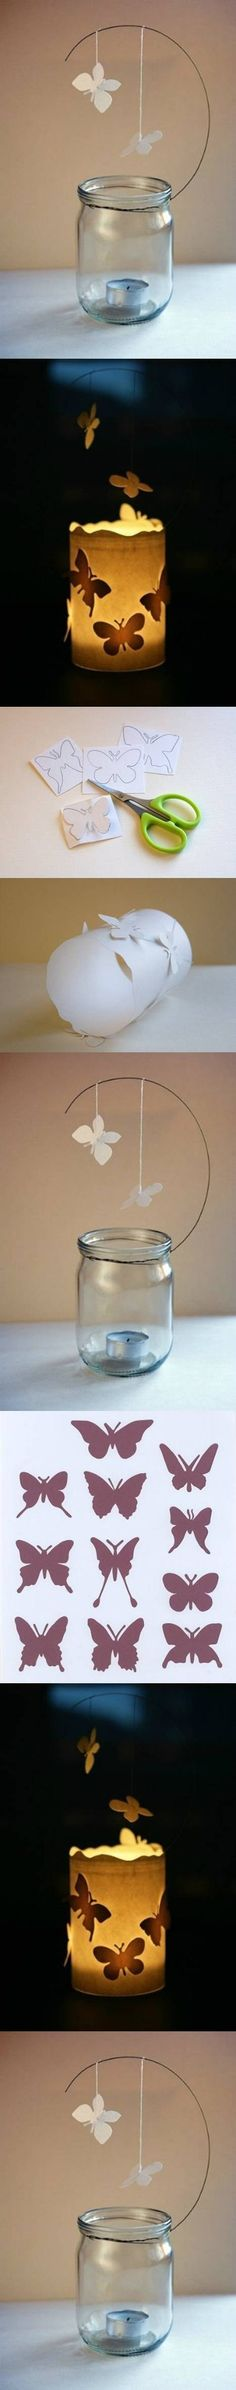 DIY Butterfly Candle Decor Ideas